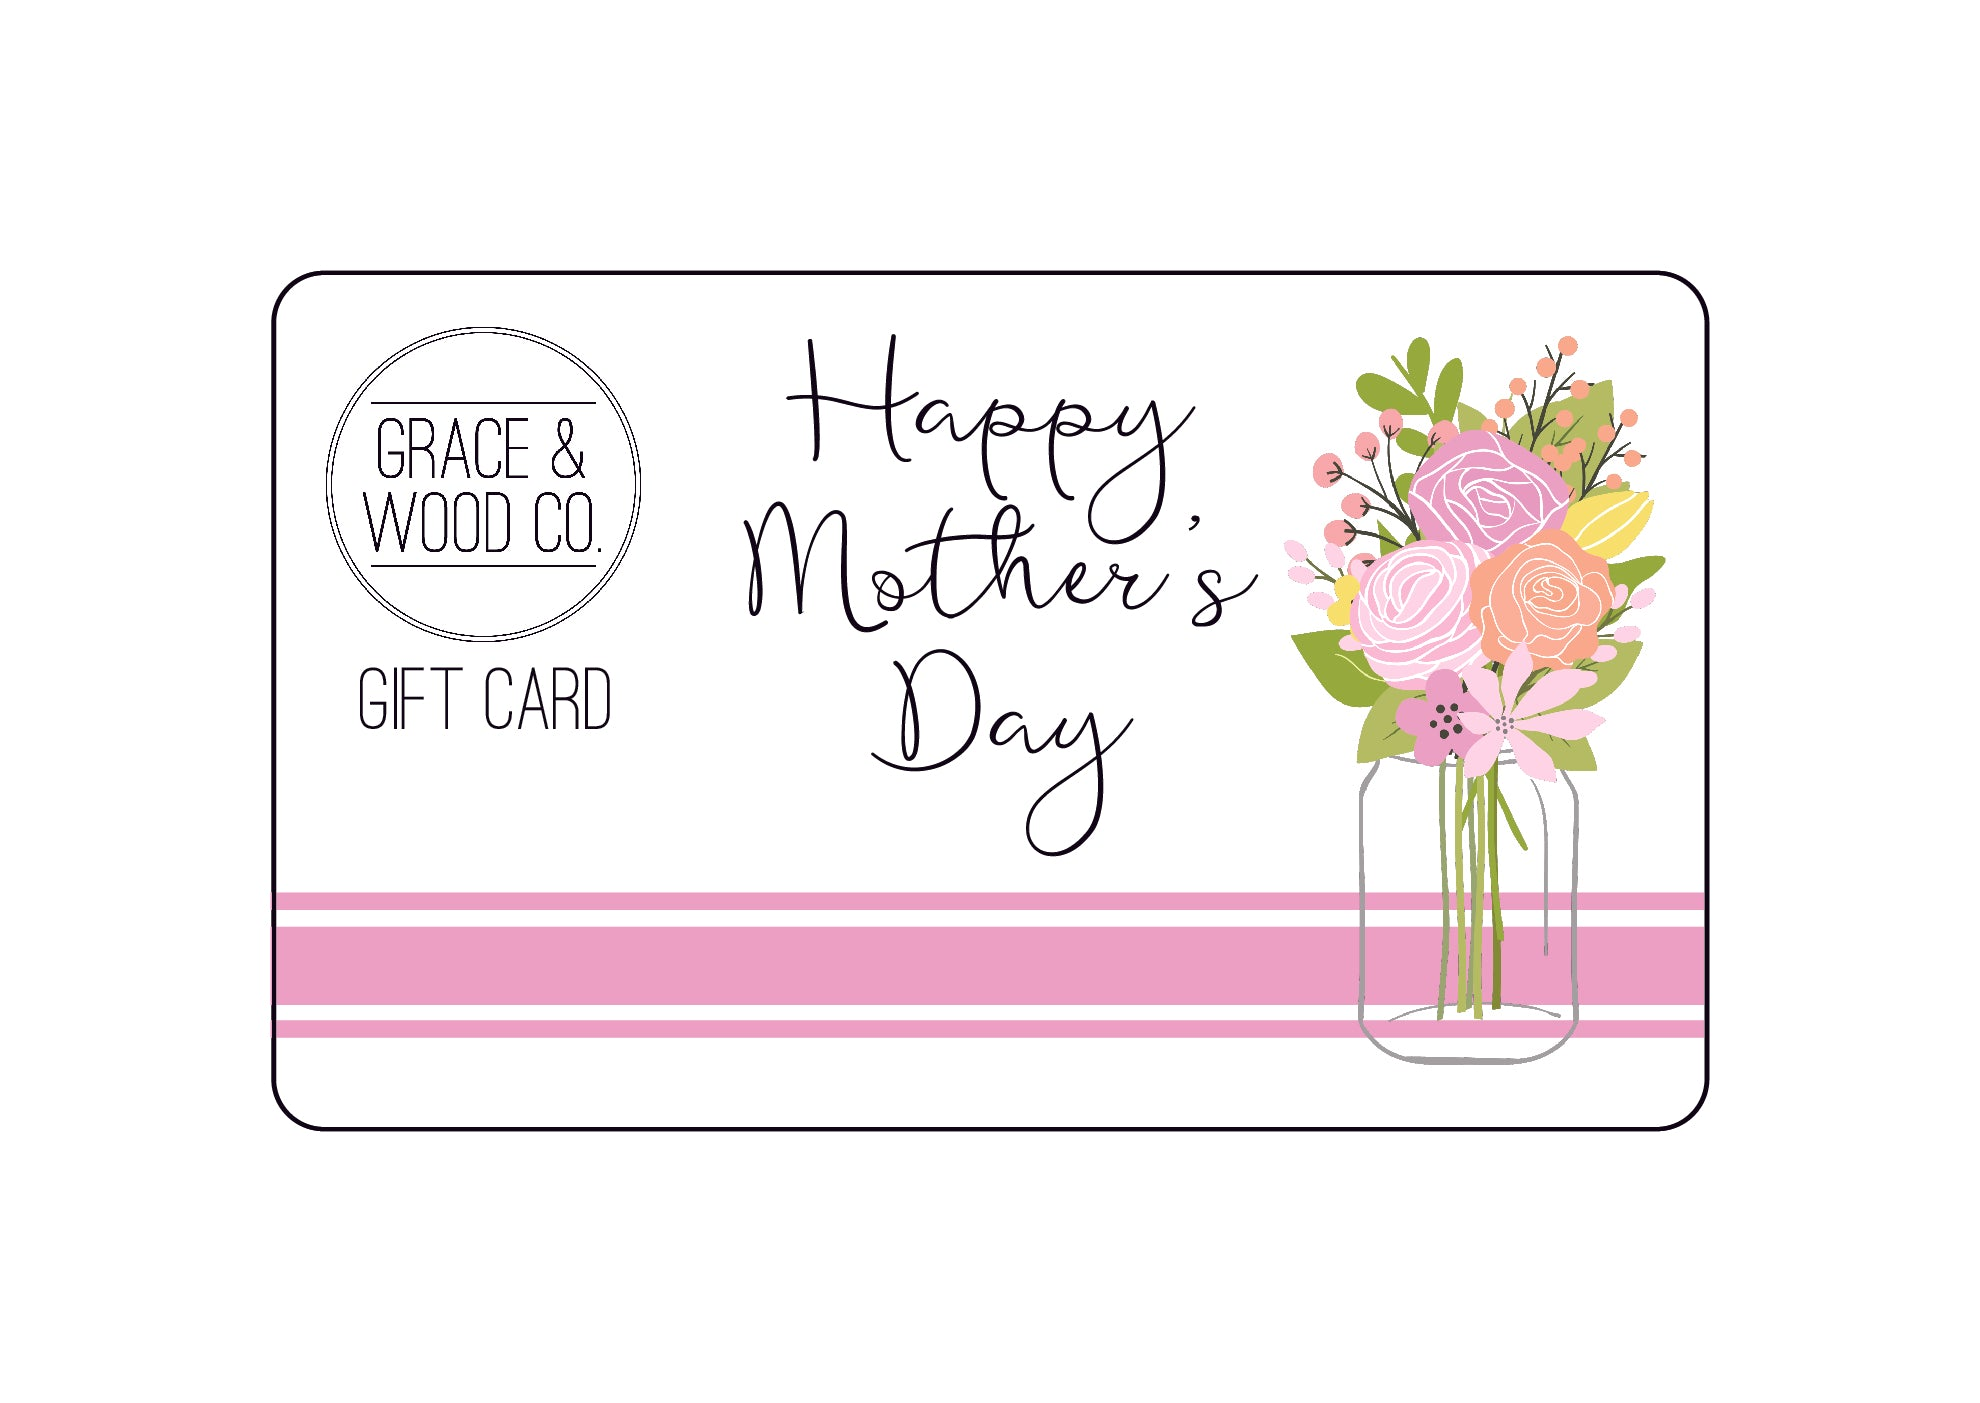 Mothers Day Gift Card - graceandwoodco